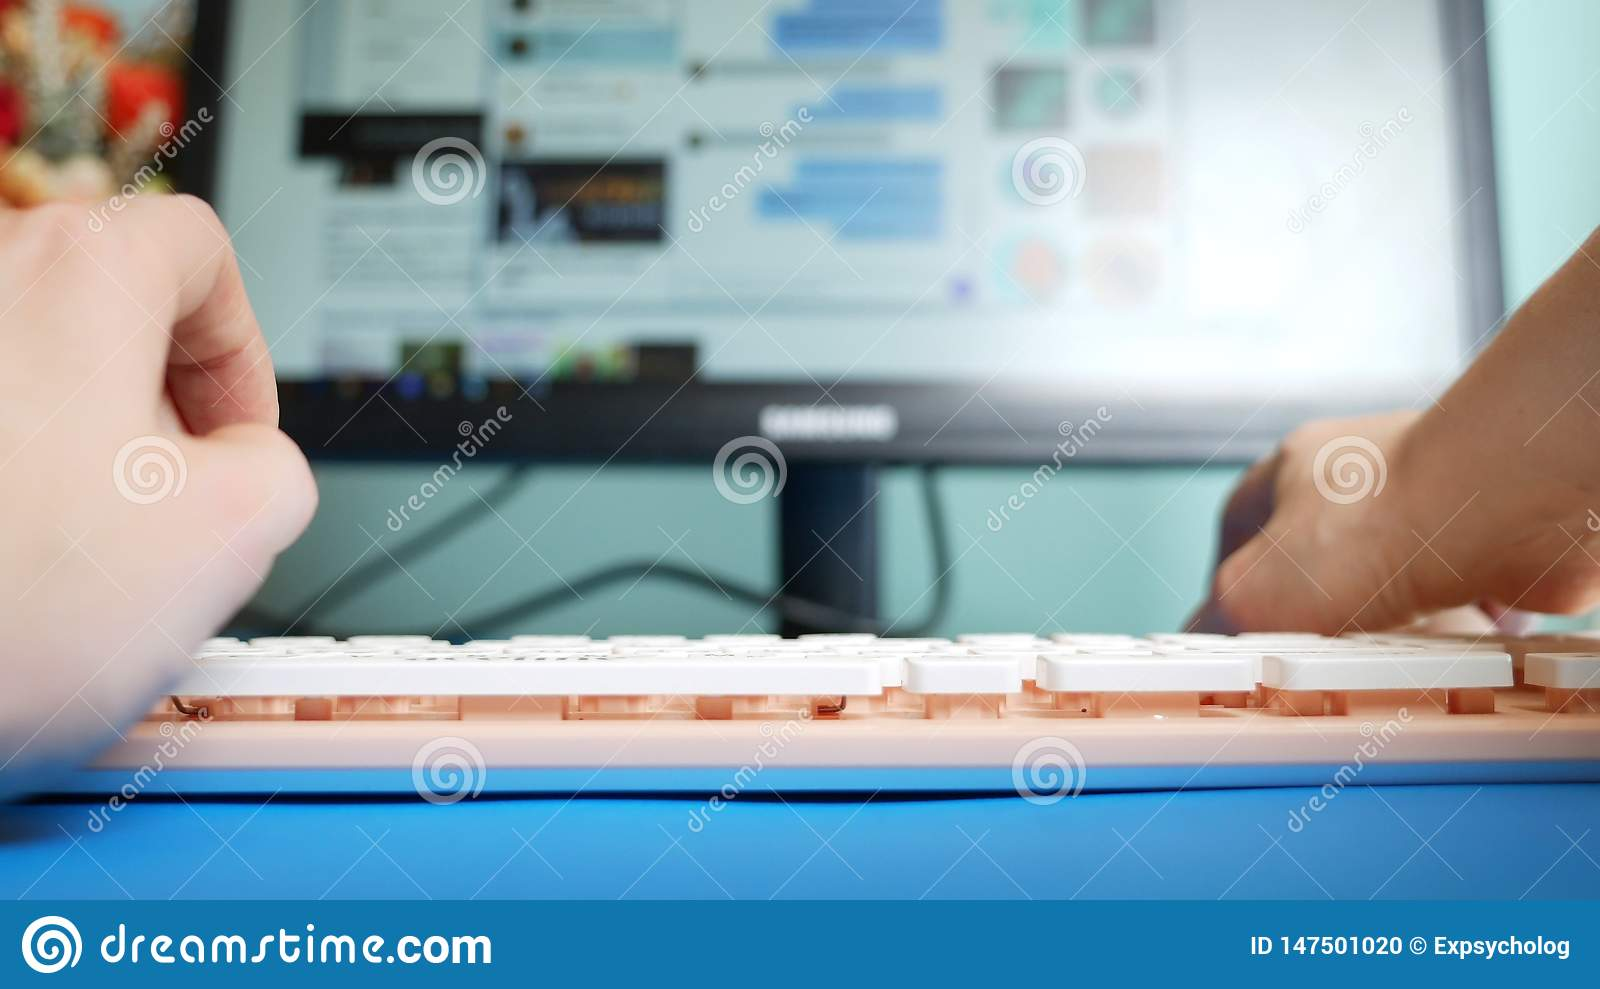 Close-up. first-person view. Female hands typing on a pink keyboard messages in social networks, against the background